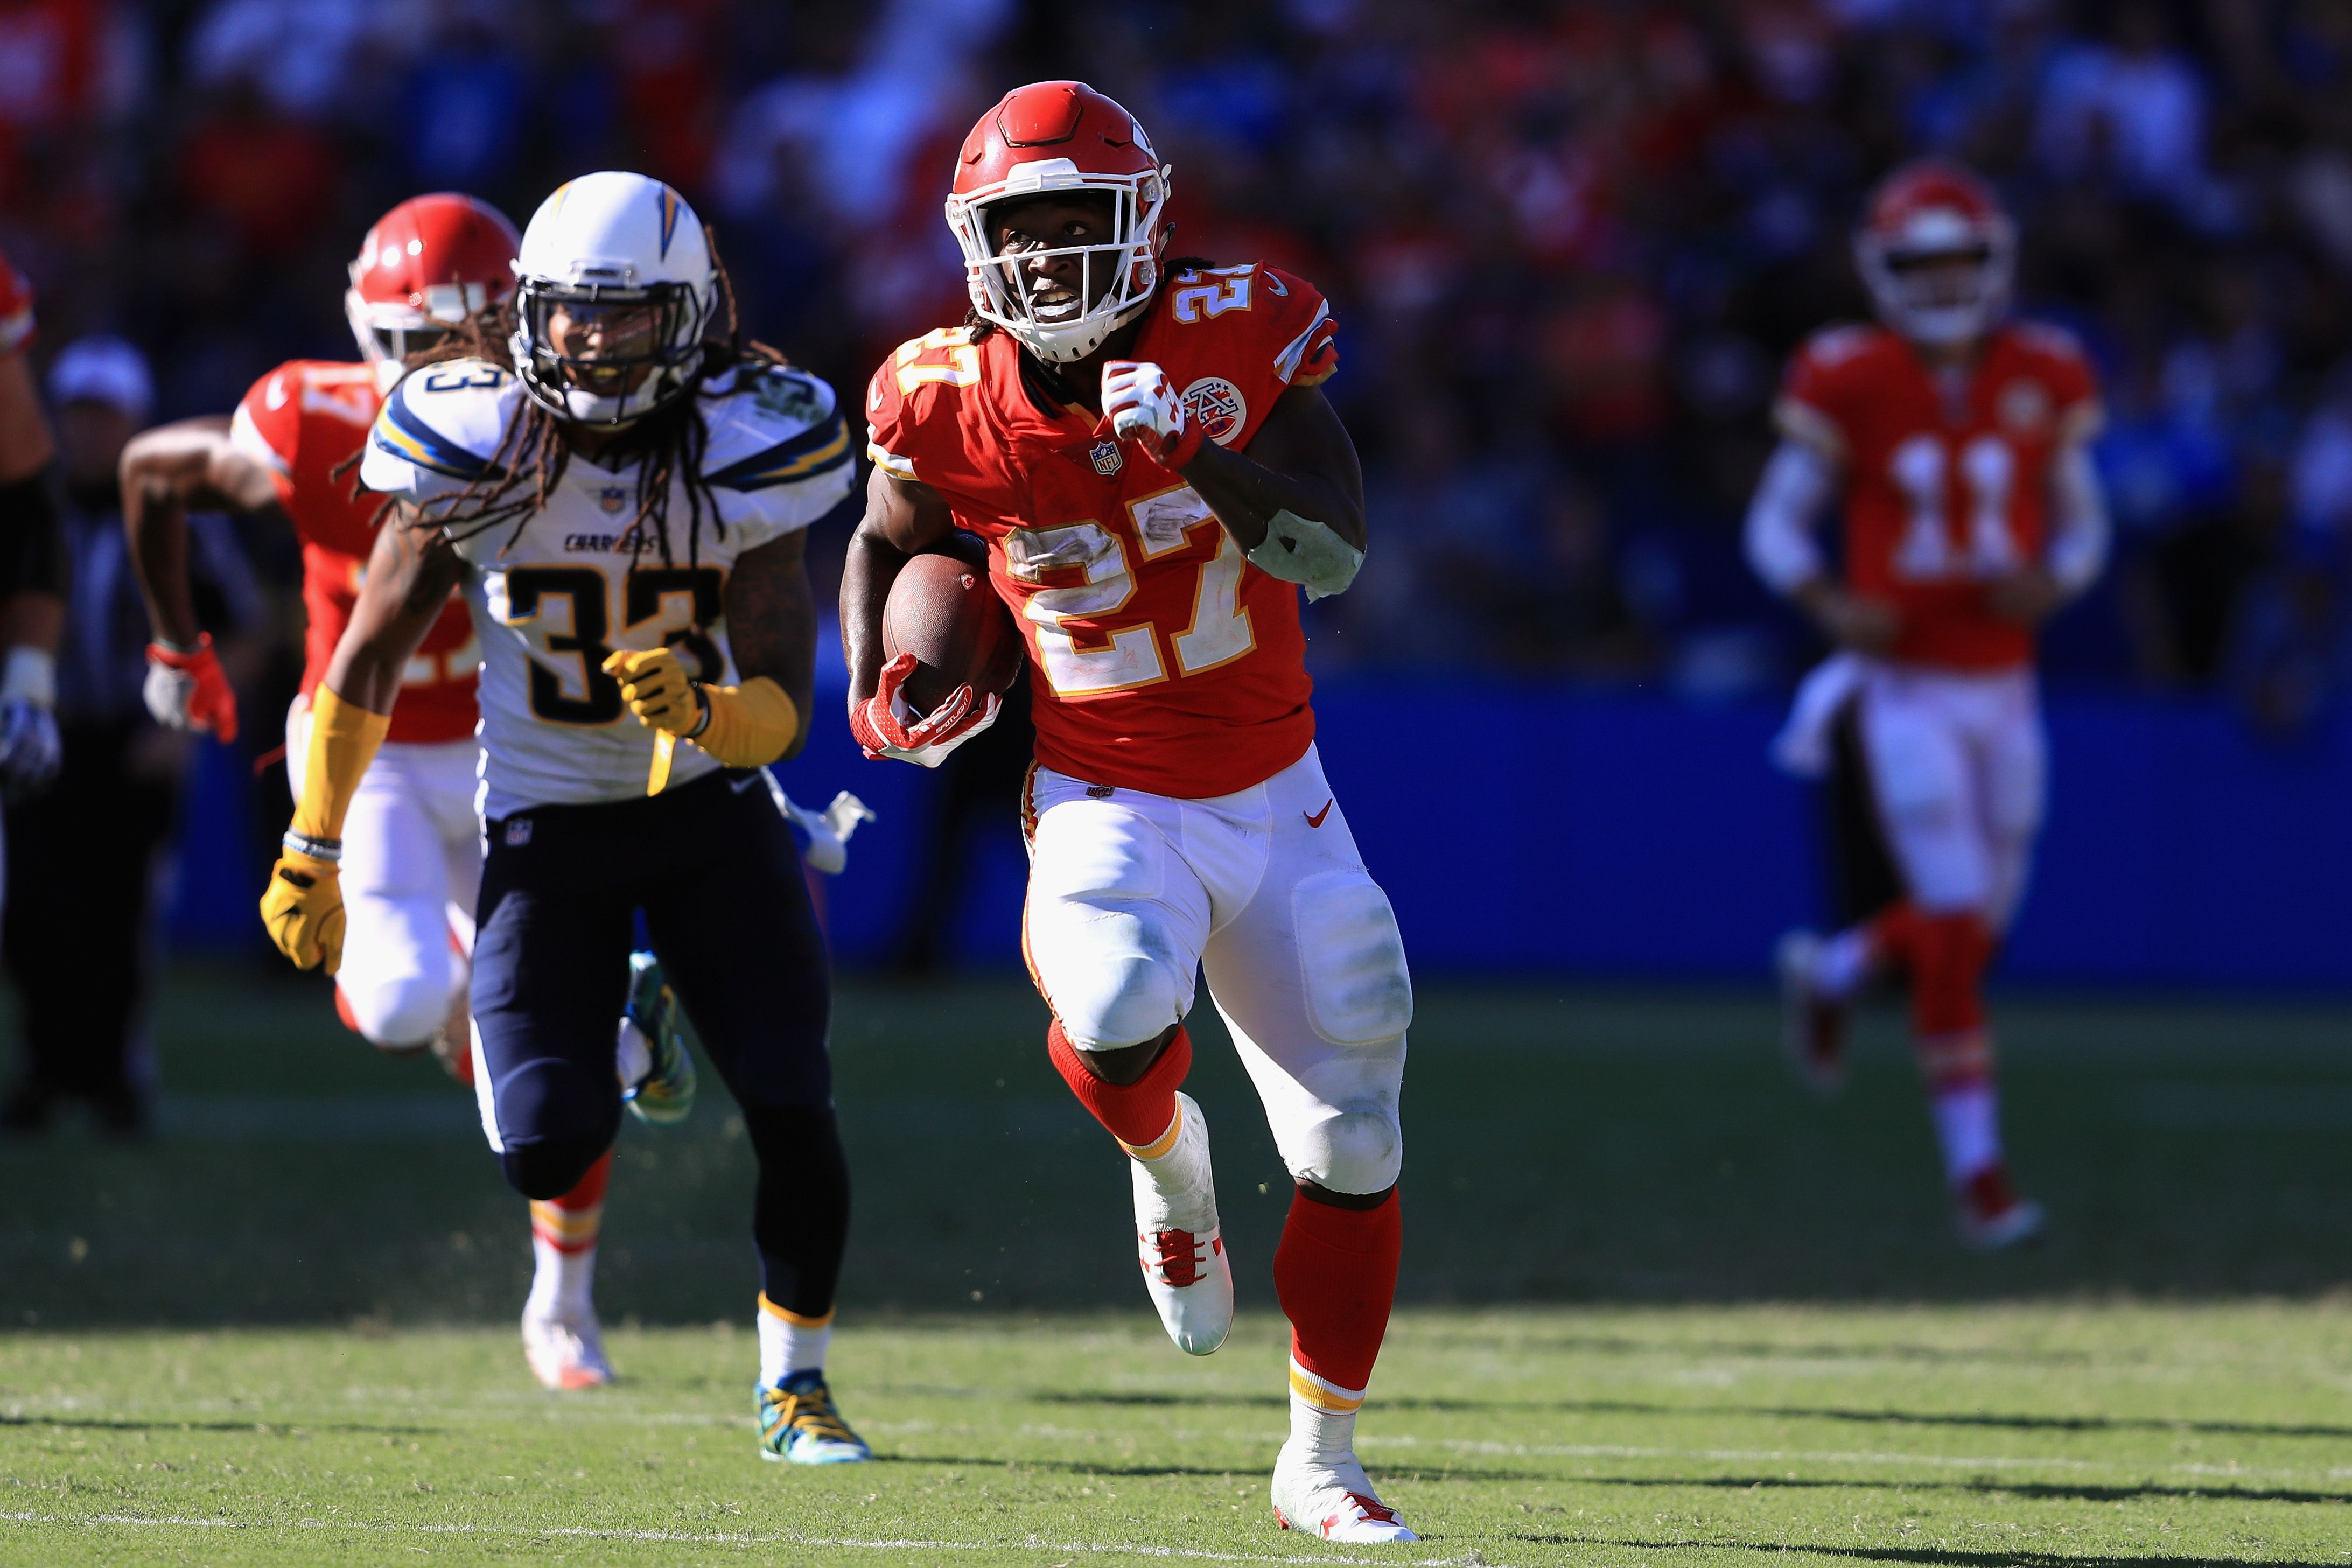 Kareem Hunt's historic start helps Chiefs stay perfect